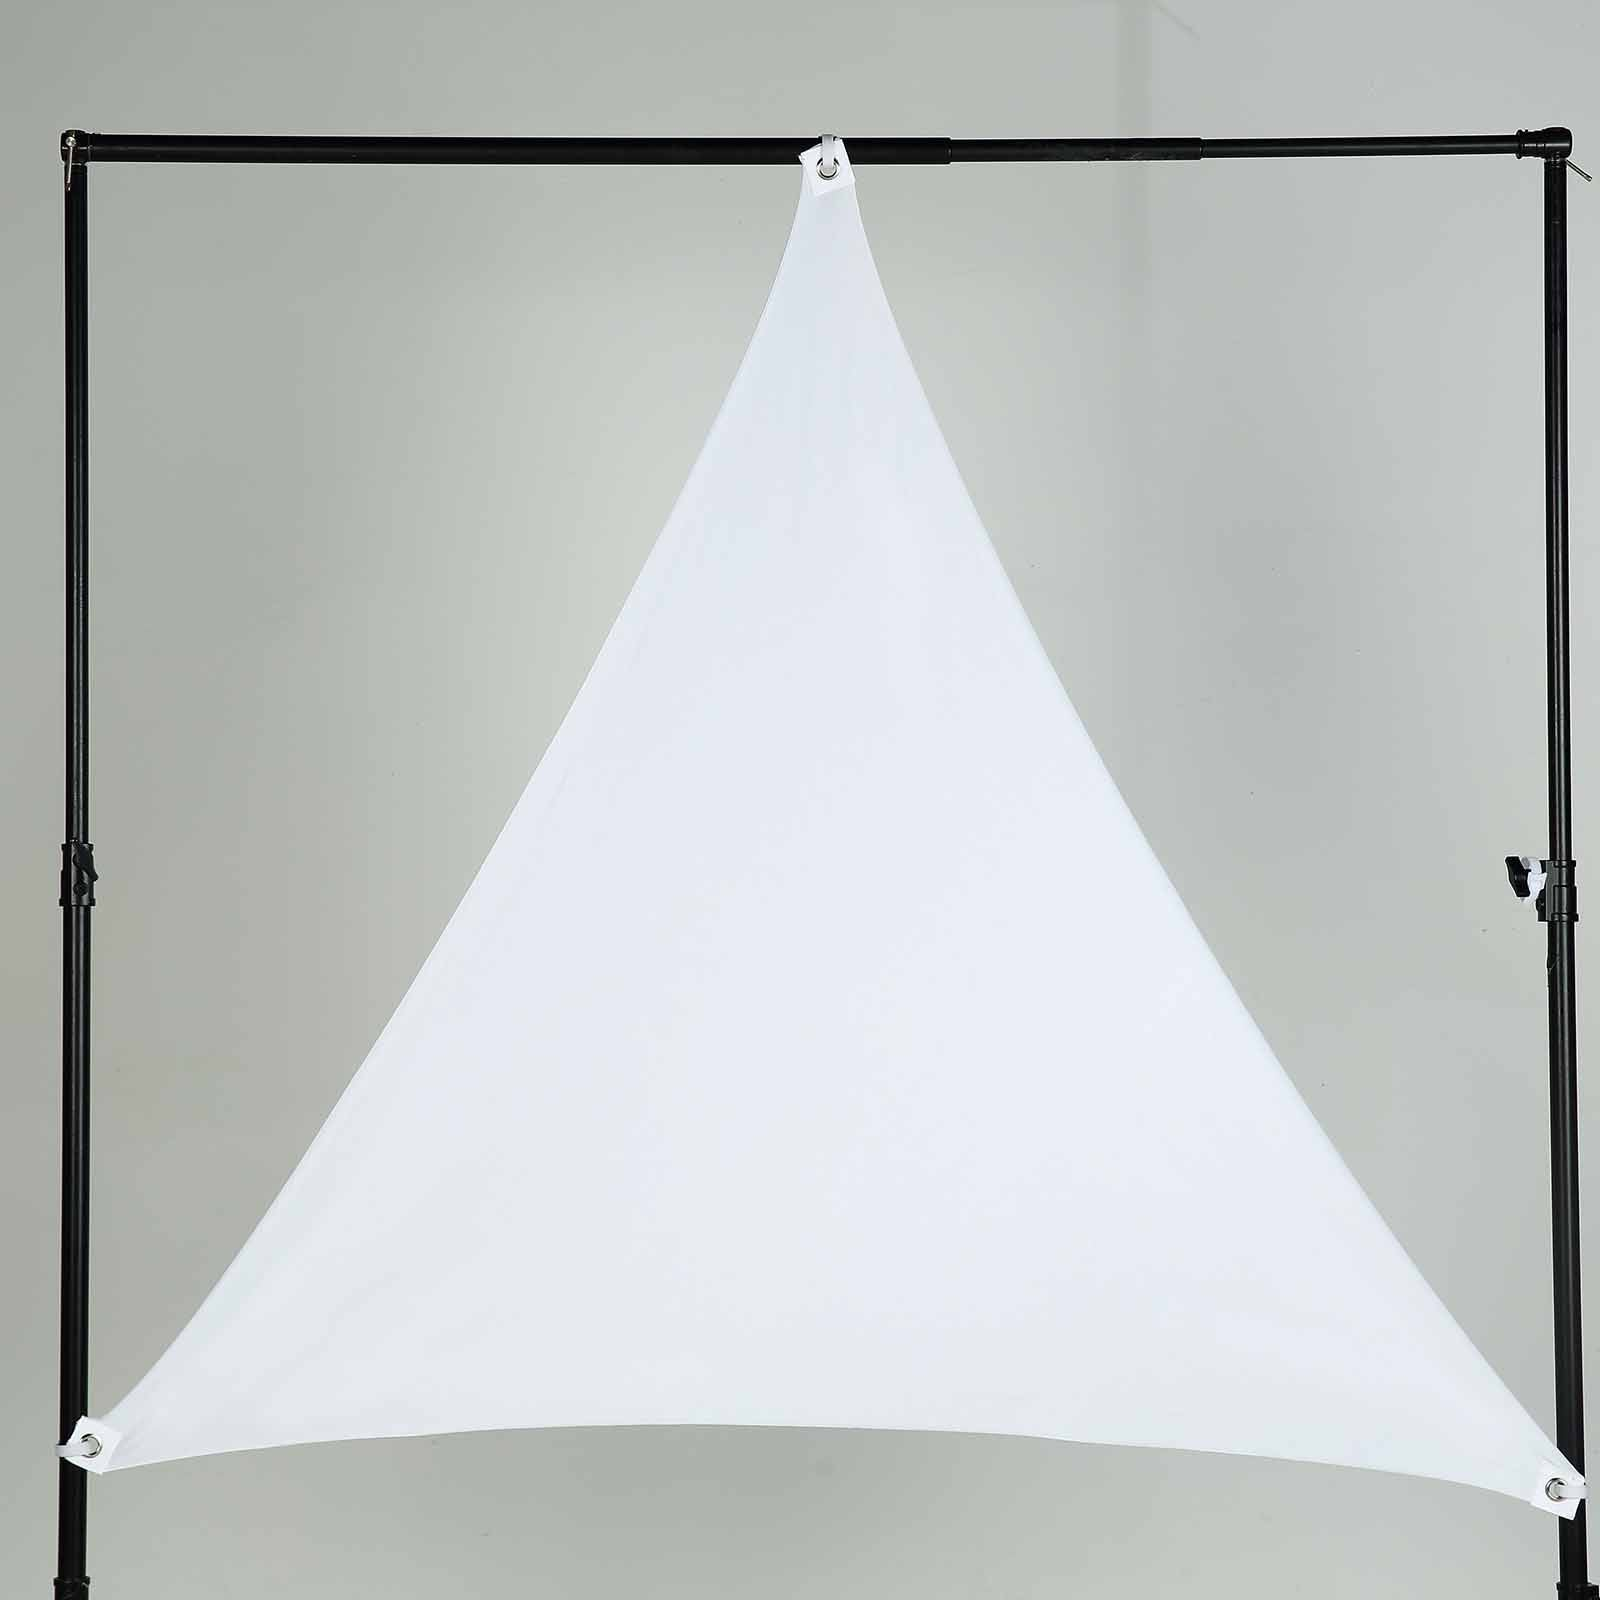 6 Ft 3 Point Spandex Ceiling Wall Patio Decoration Sunshade